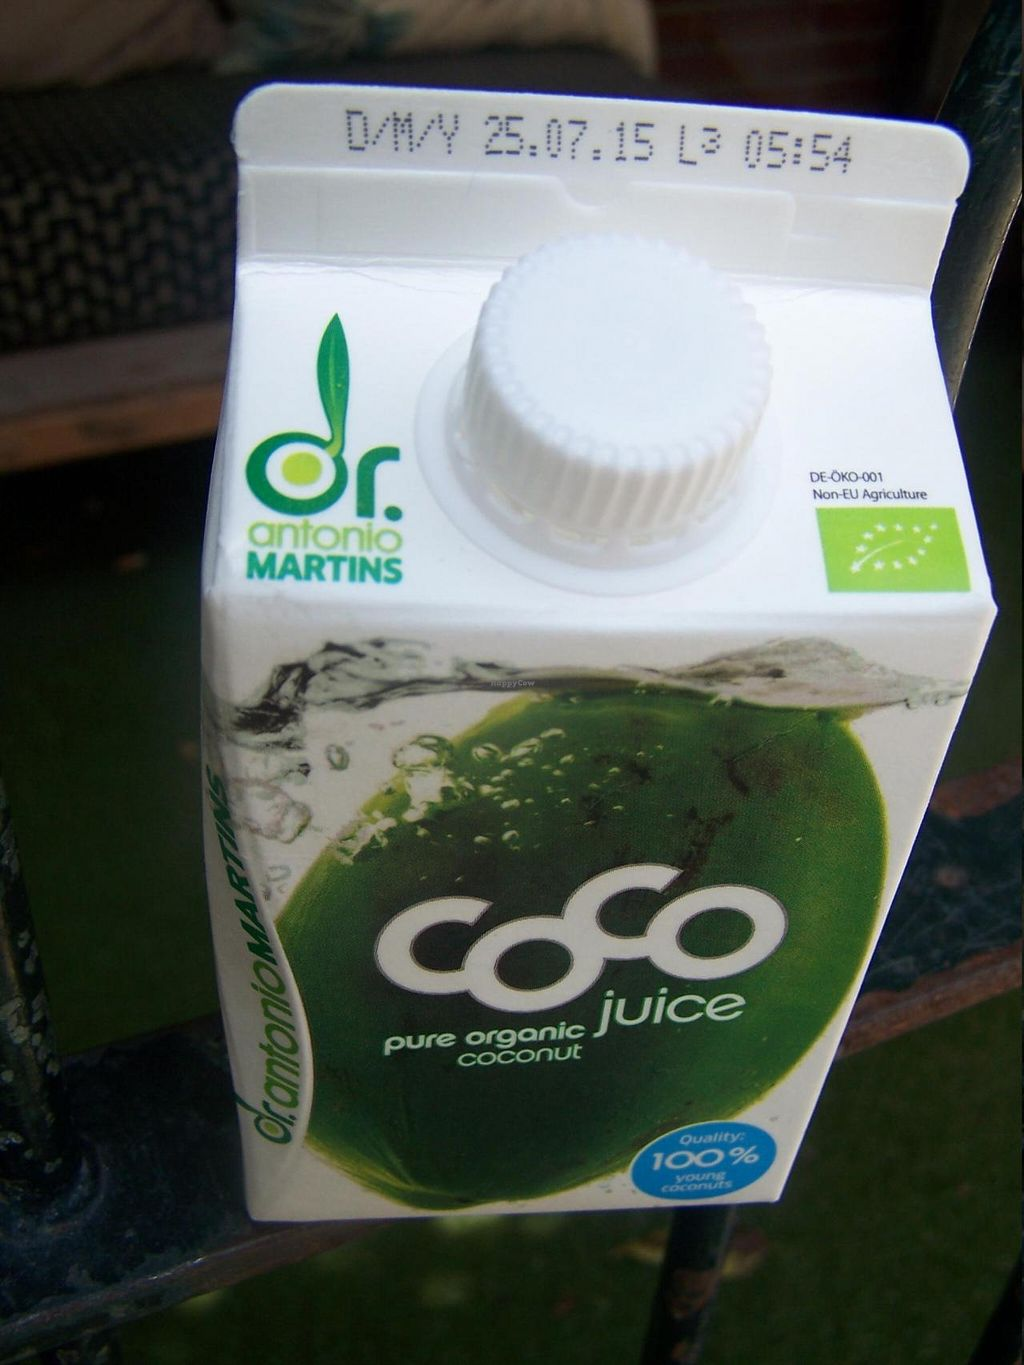 "Photo of CLOSED: Superfood Centre at Health Club Jordan  by <a href=""/members/profile/Amy1274"">Amy1274</a> <br/>One available item - coconut juice, 3 Euros for 500ml <br/> July 19, 2014  - <a href='/contact/abuse/image/15413/74405'>Report</a>"